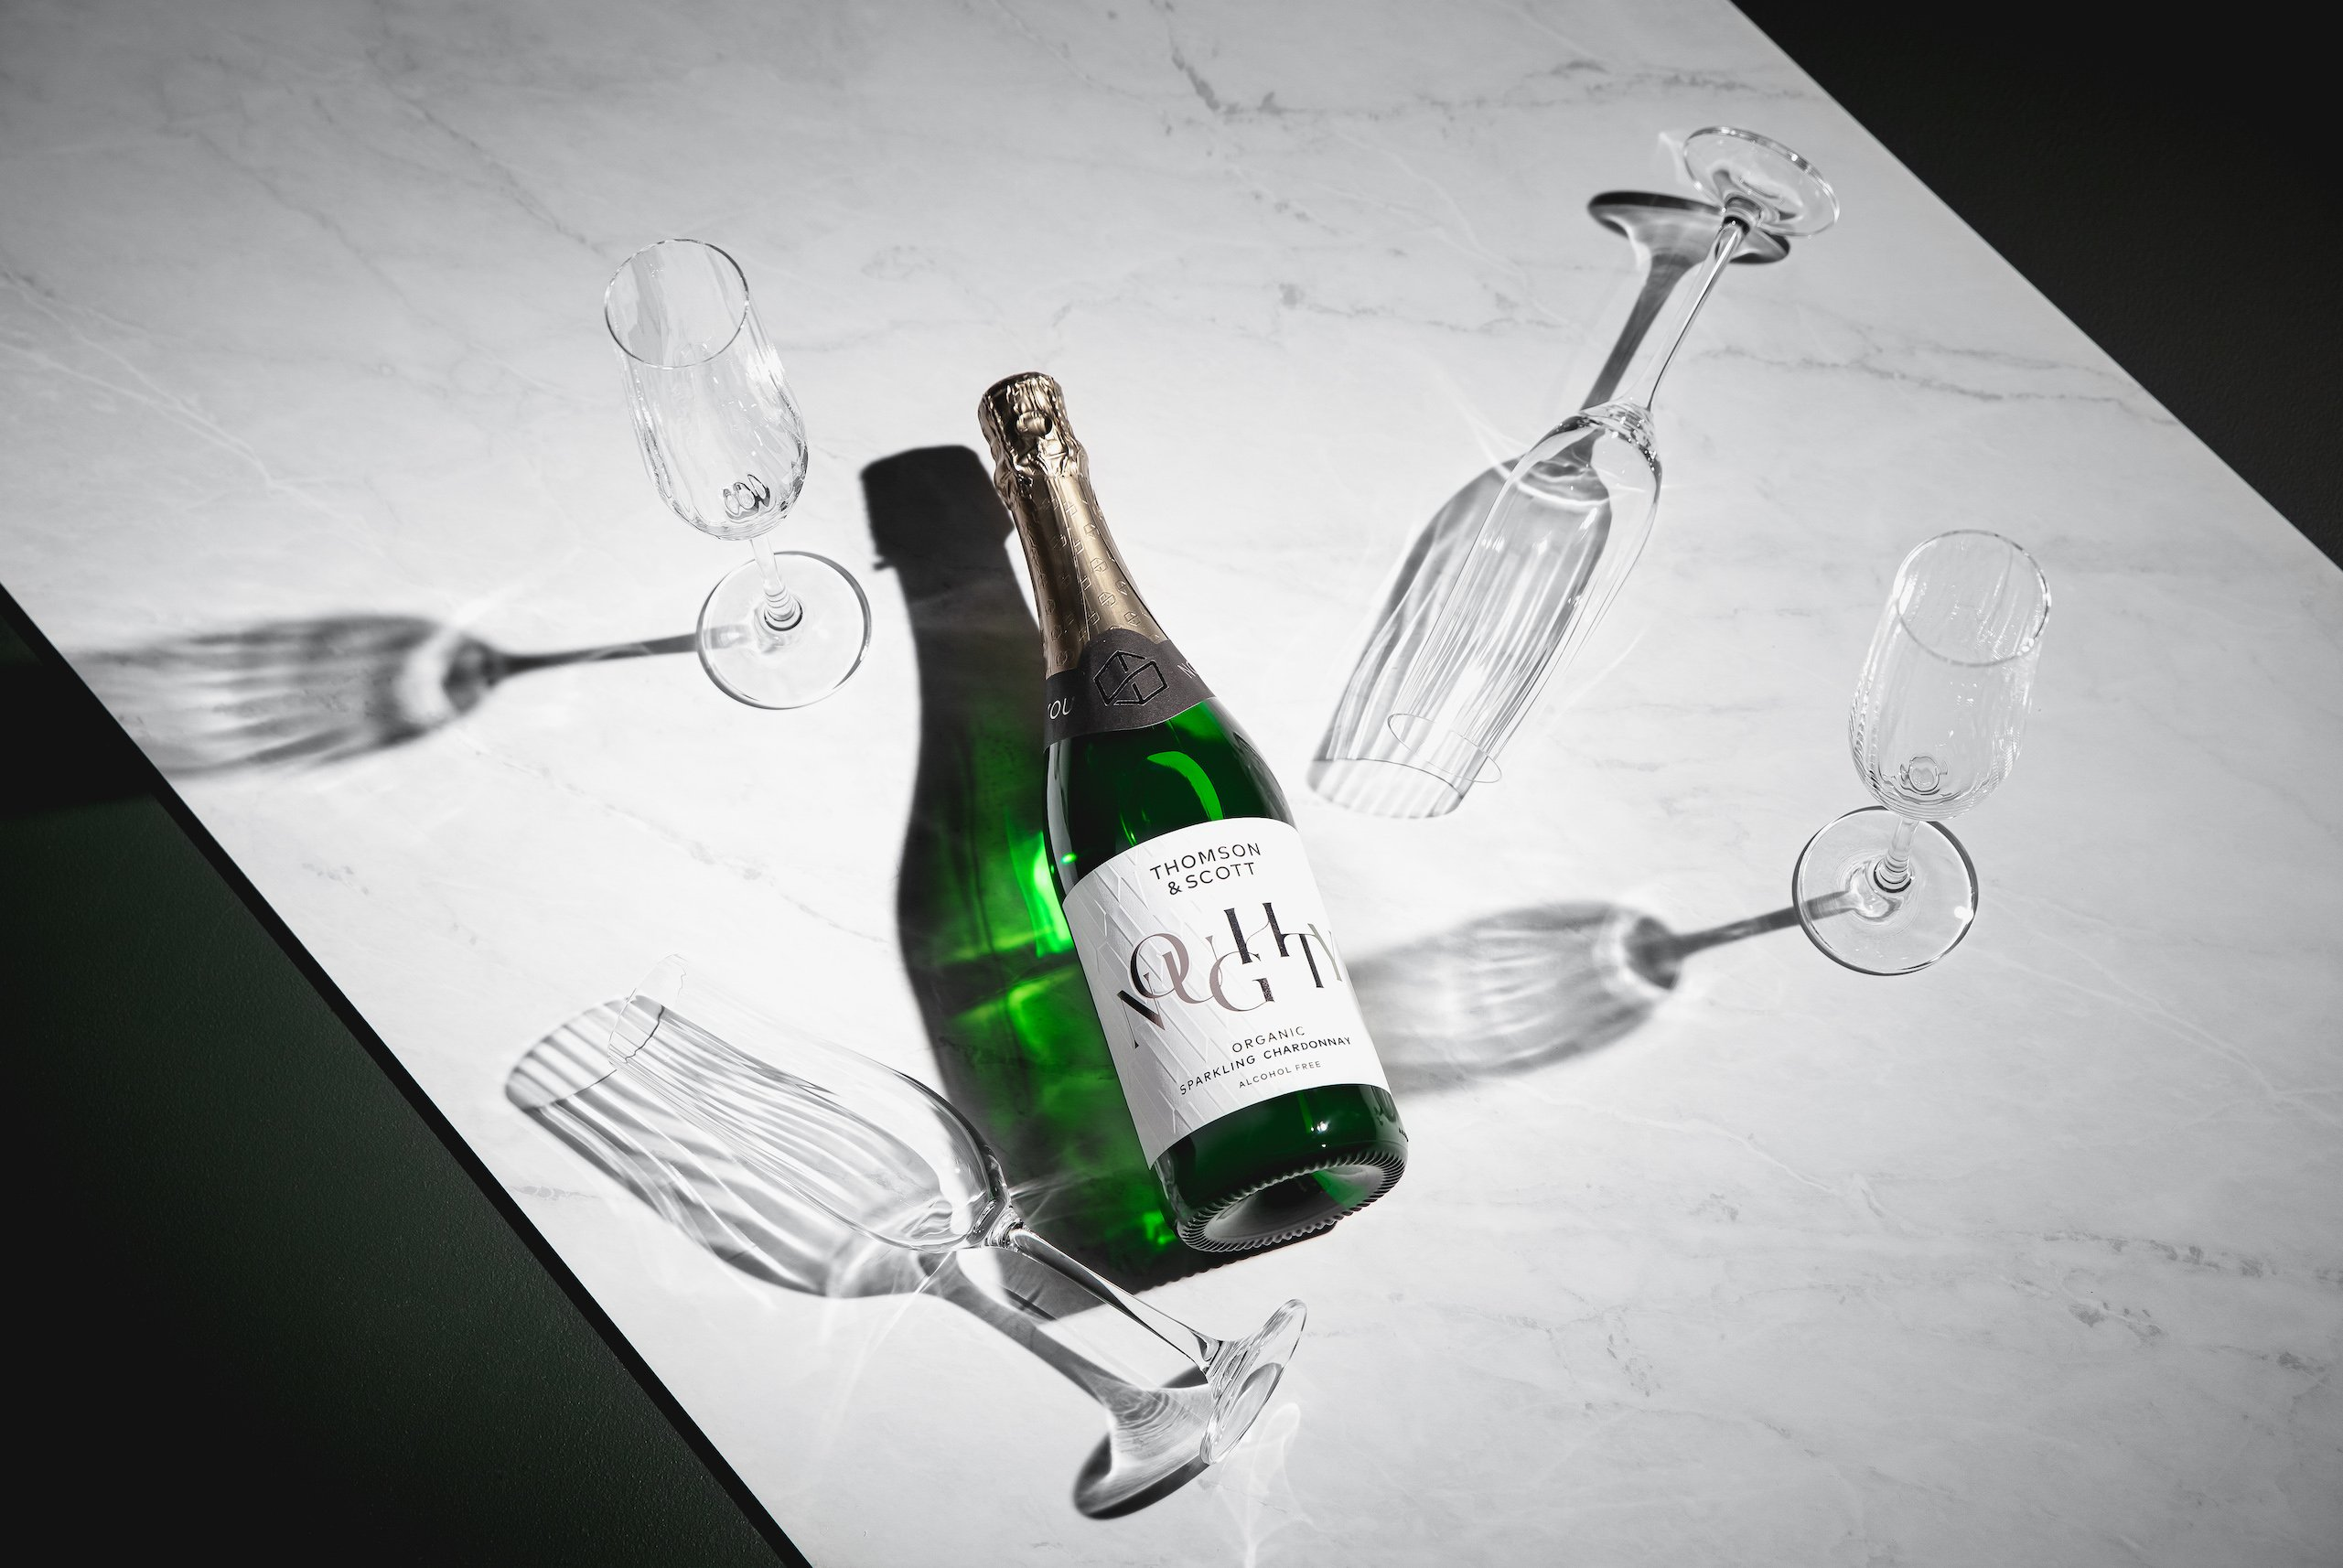 """Marie Claire Magazine in Australia says that Thomson & Scott have """"changed the game with their non-alcoholic take on sparkling wine"""" citing """"bubbles and flavour, just sans the killer hangover."""""""